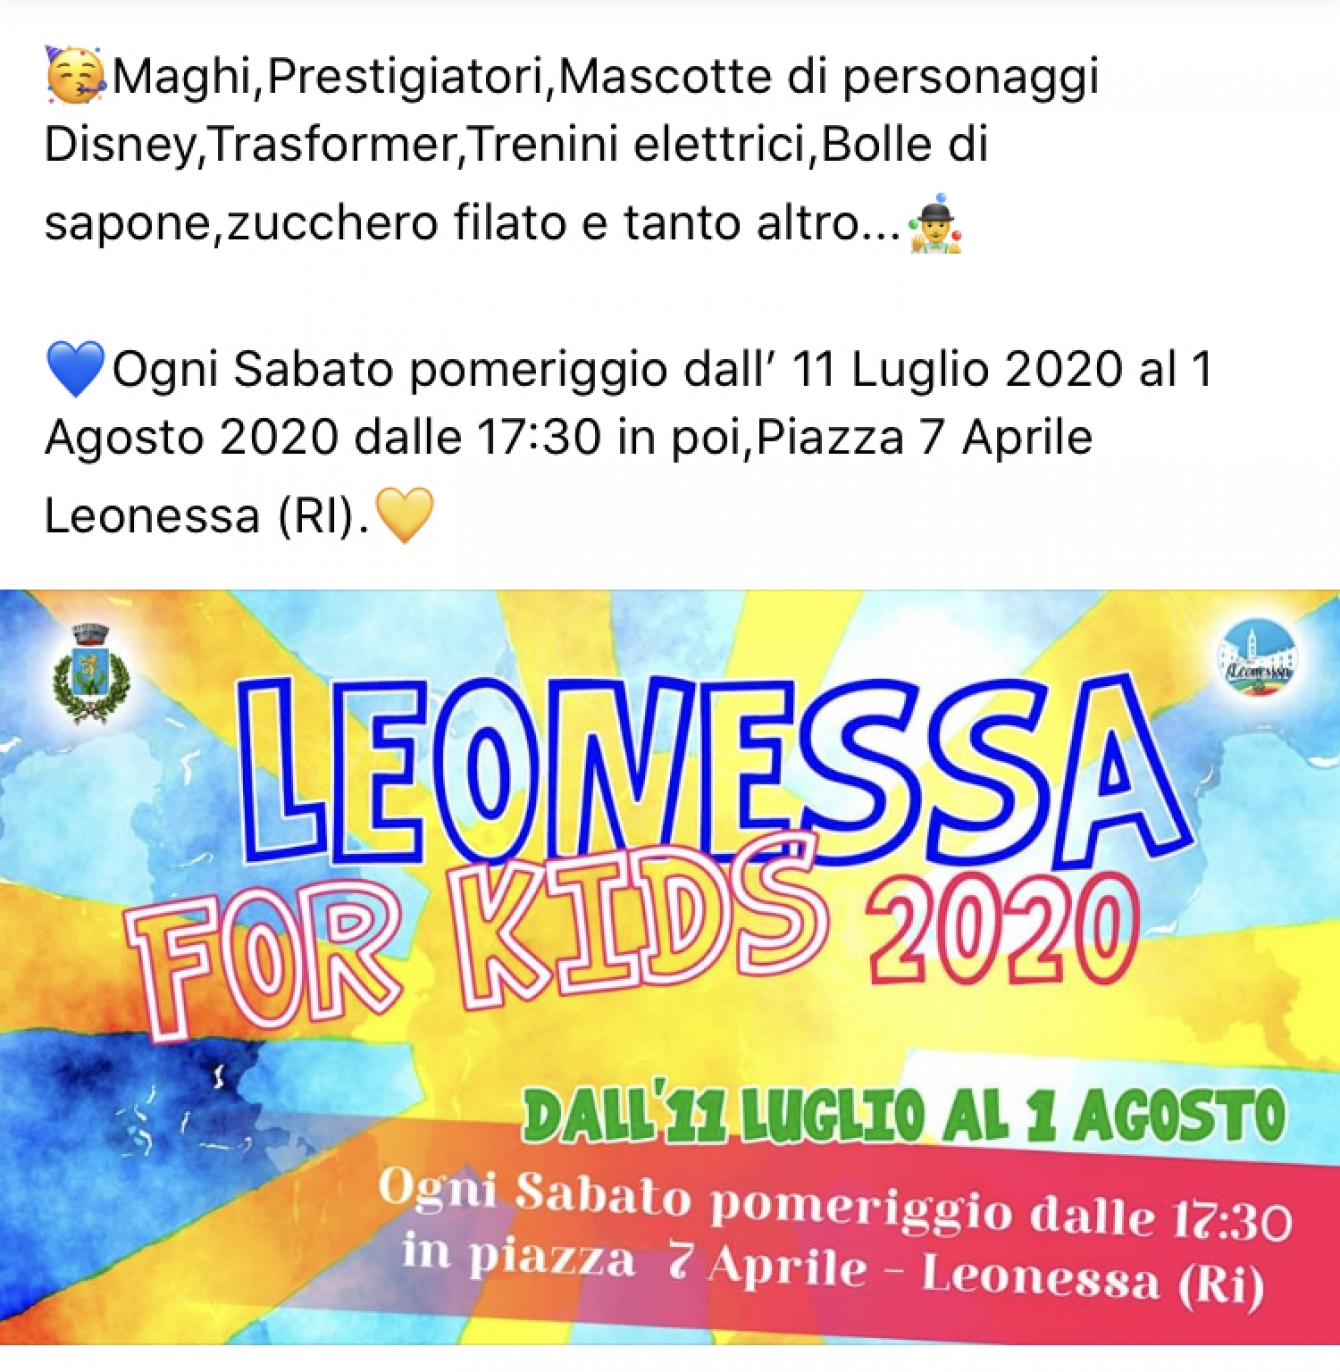 LEONESSA FOR KIDS